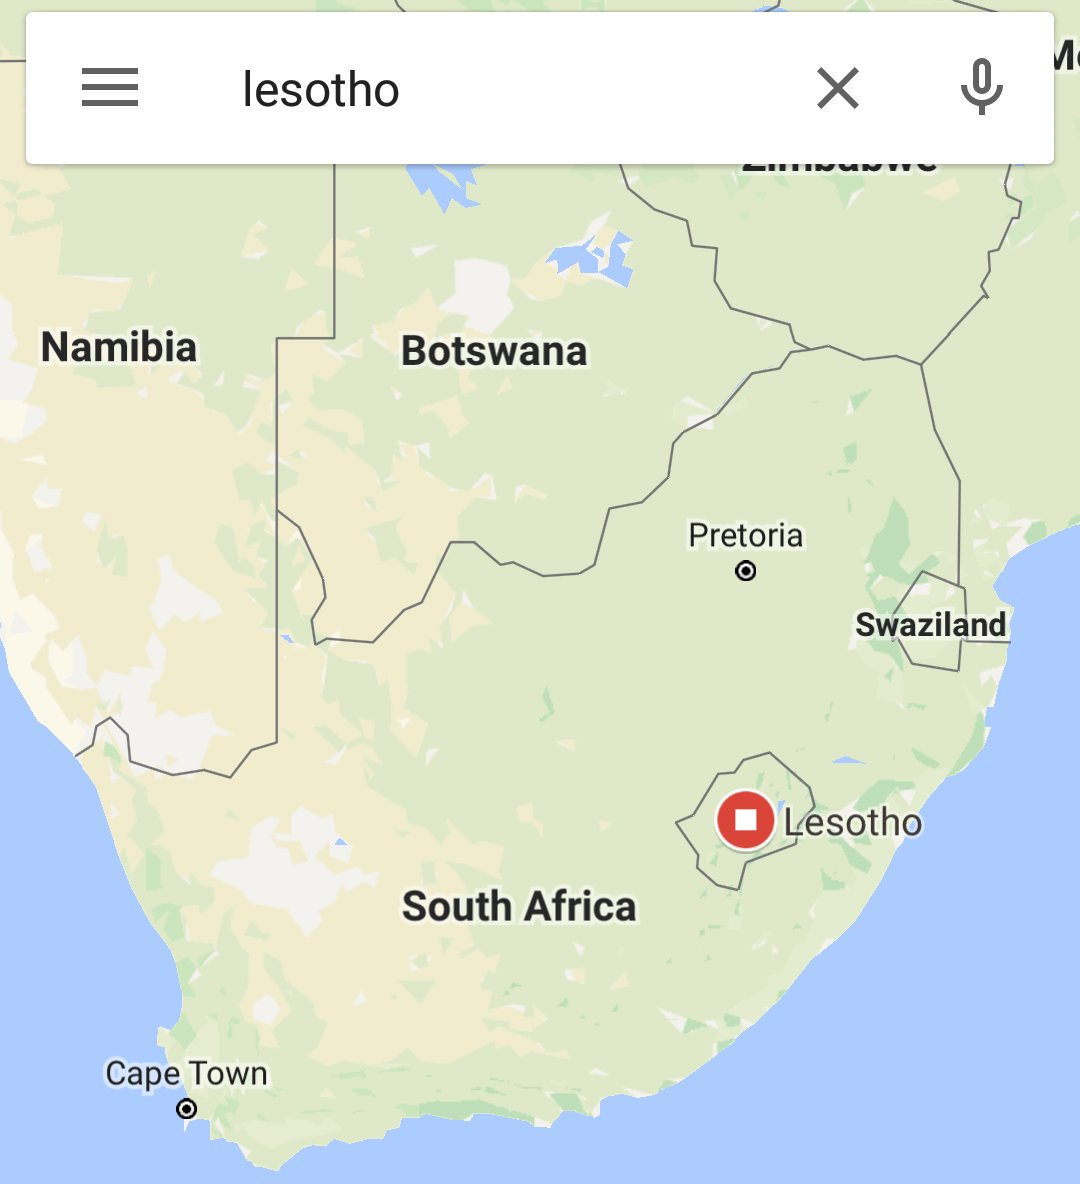 Ajala Ng On Twitter Fyi Lesotho Is A Country Inside South Africa